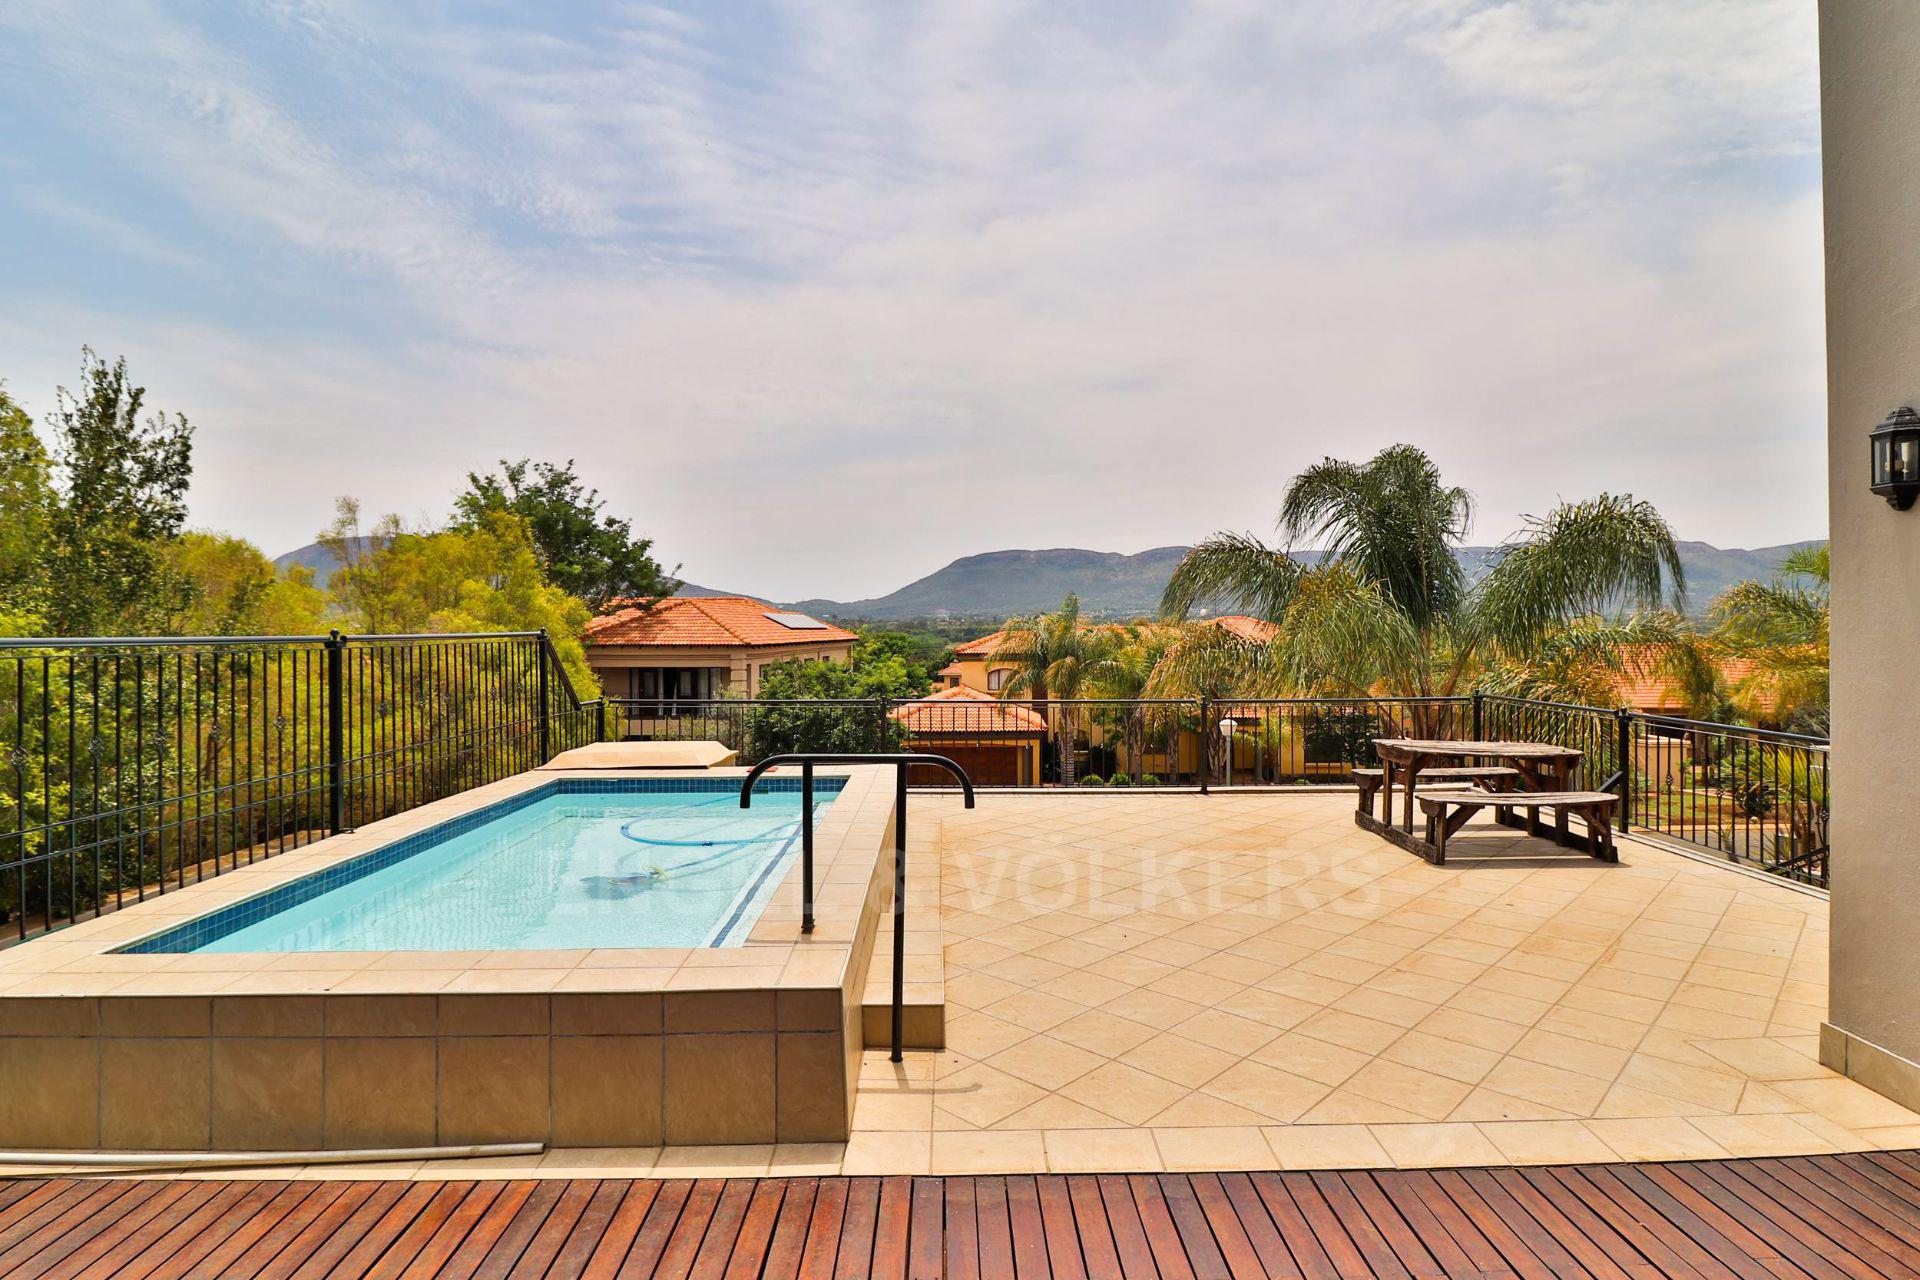 House in Xanadu Eco Park - Raised pool with a view